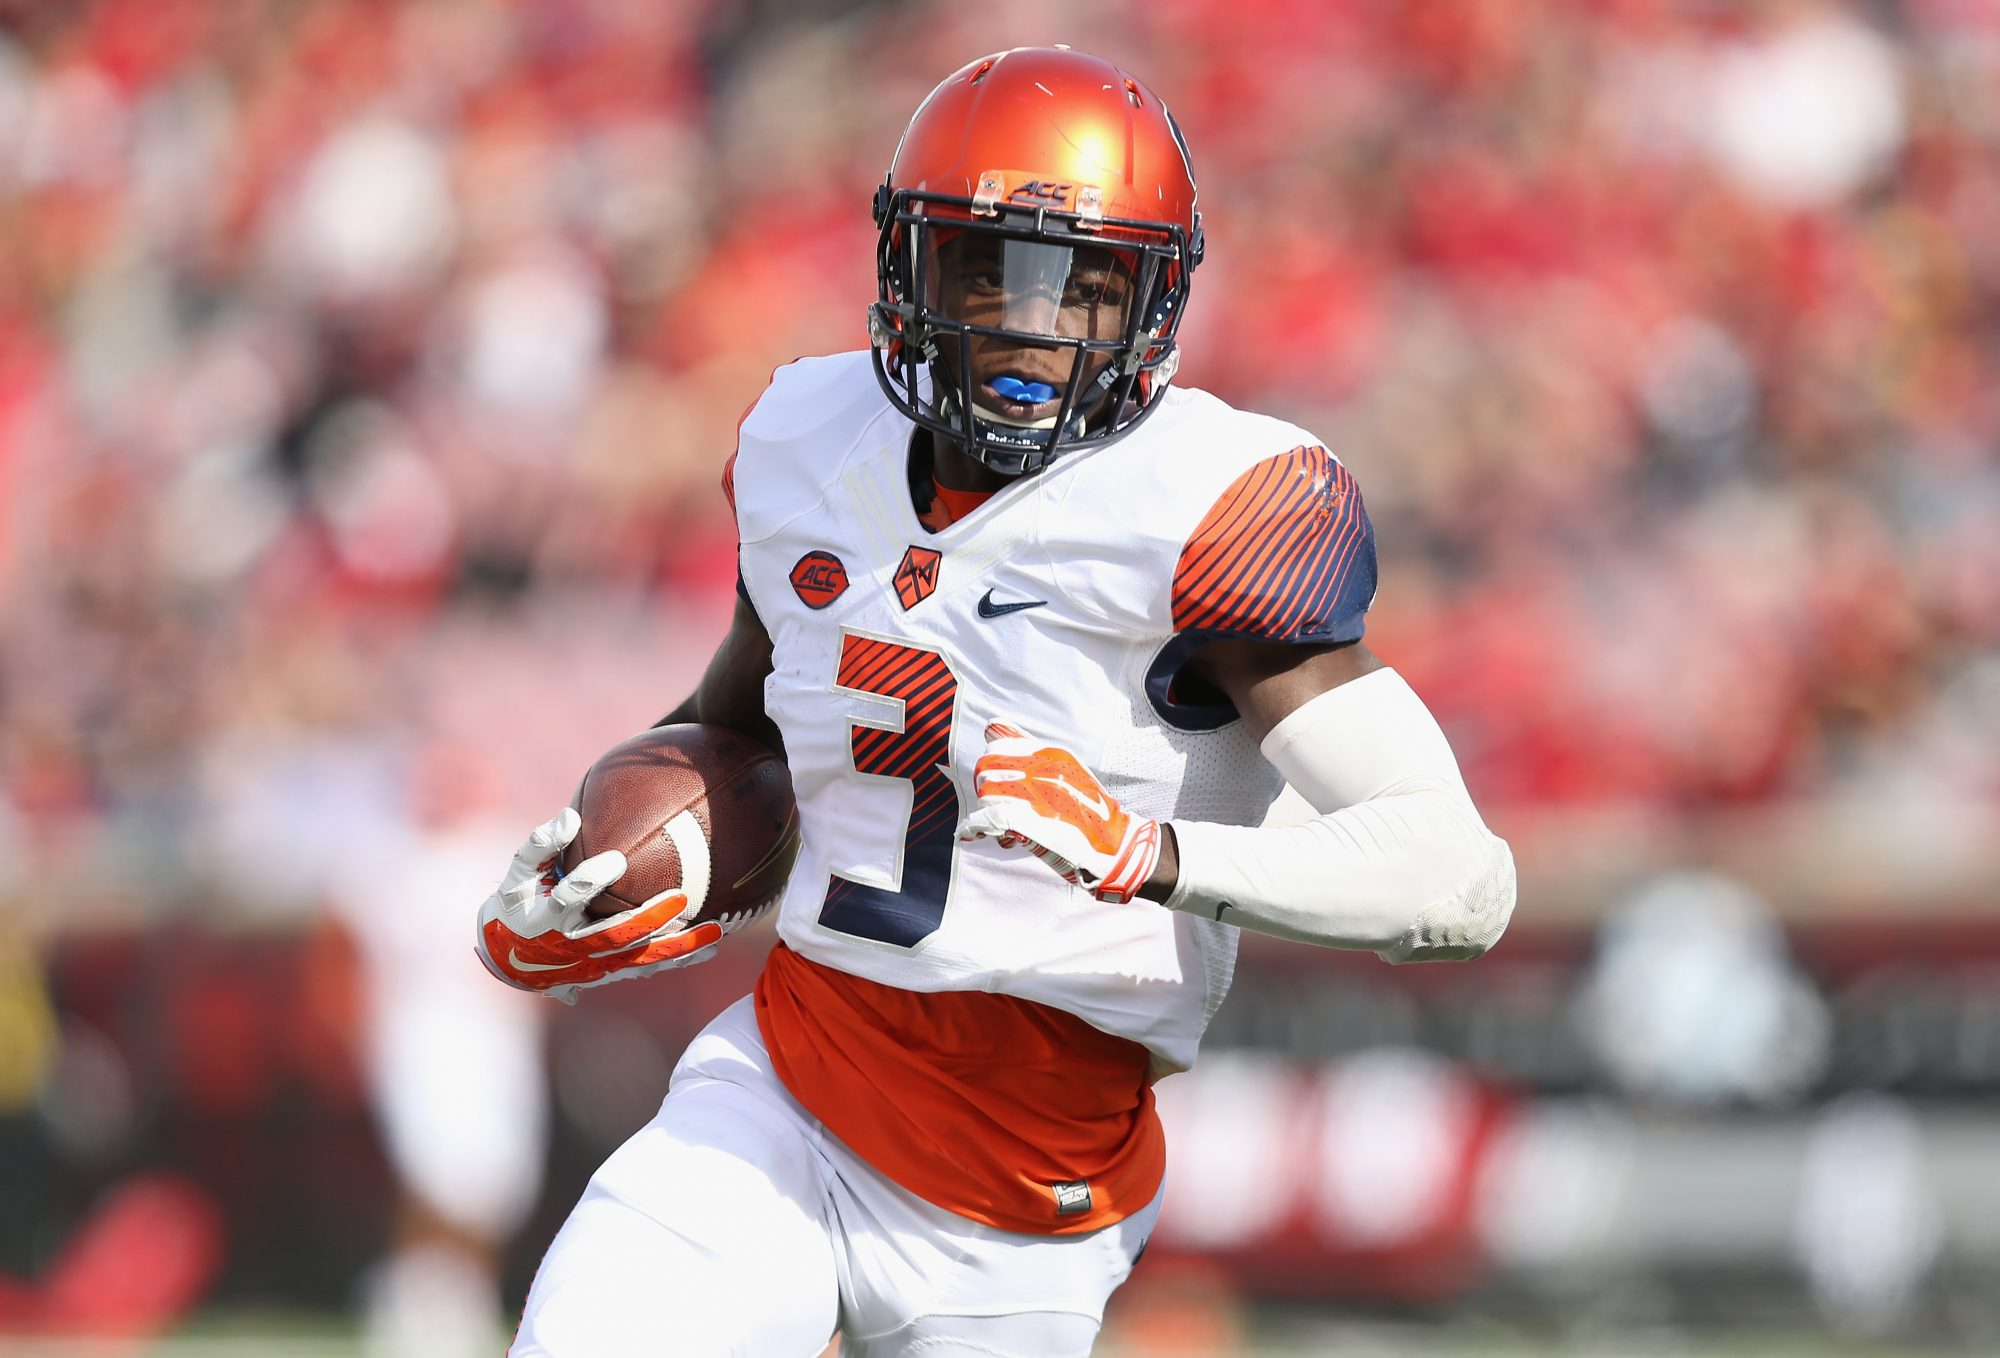 ESNY Video: Heart, Not Size, Powers Shifty Syracuse WR Ervin Phillips 2